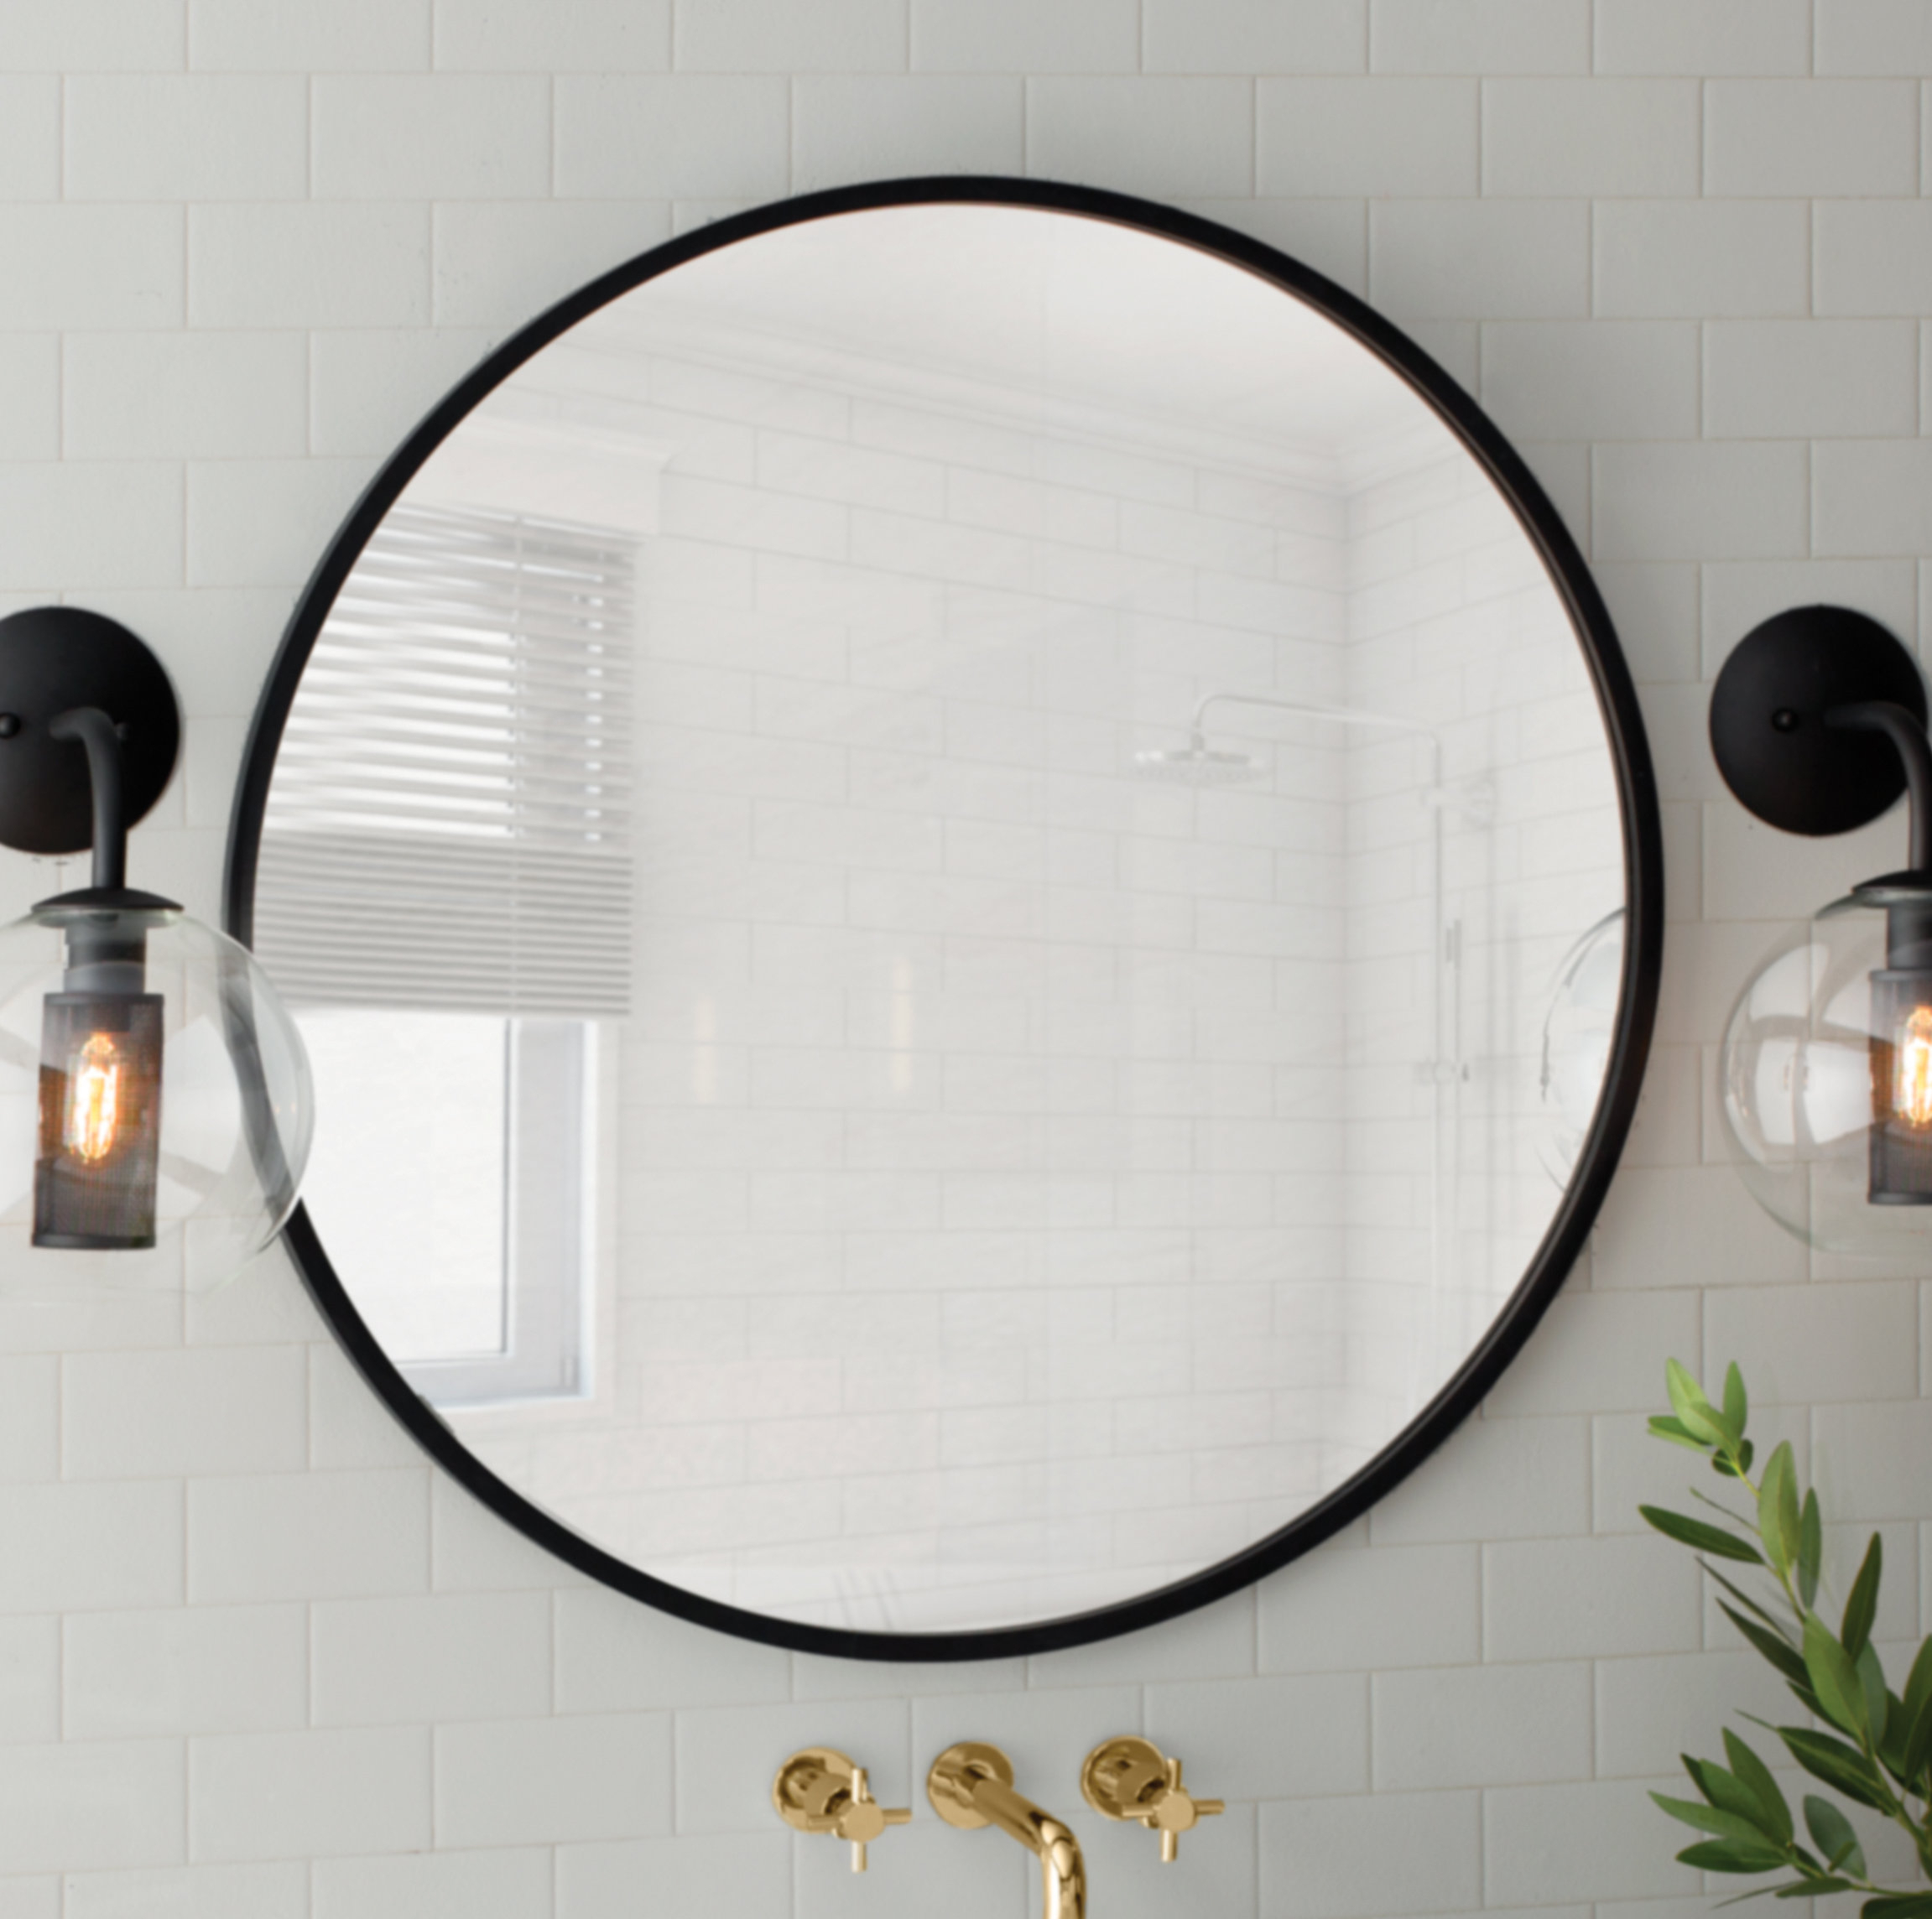 Hub Modern And Contemporary Accent Mirror Inside Kayden Accent Mirrors (View 12 of 20)